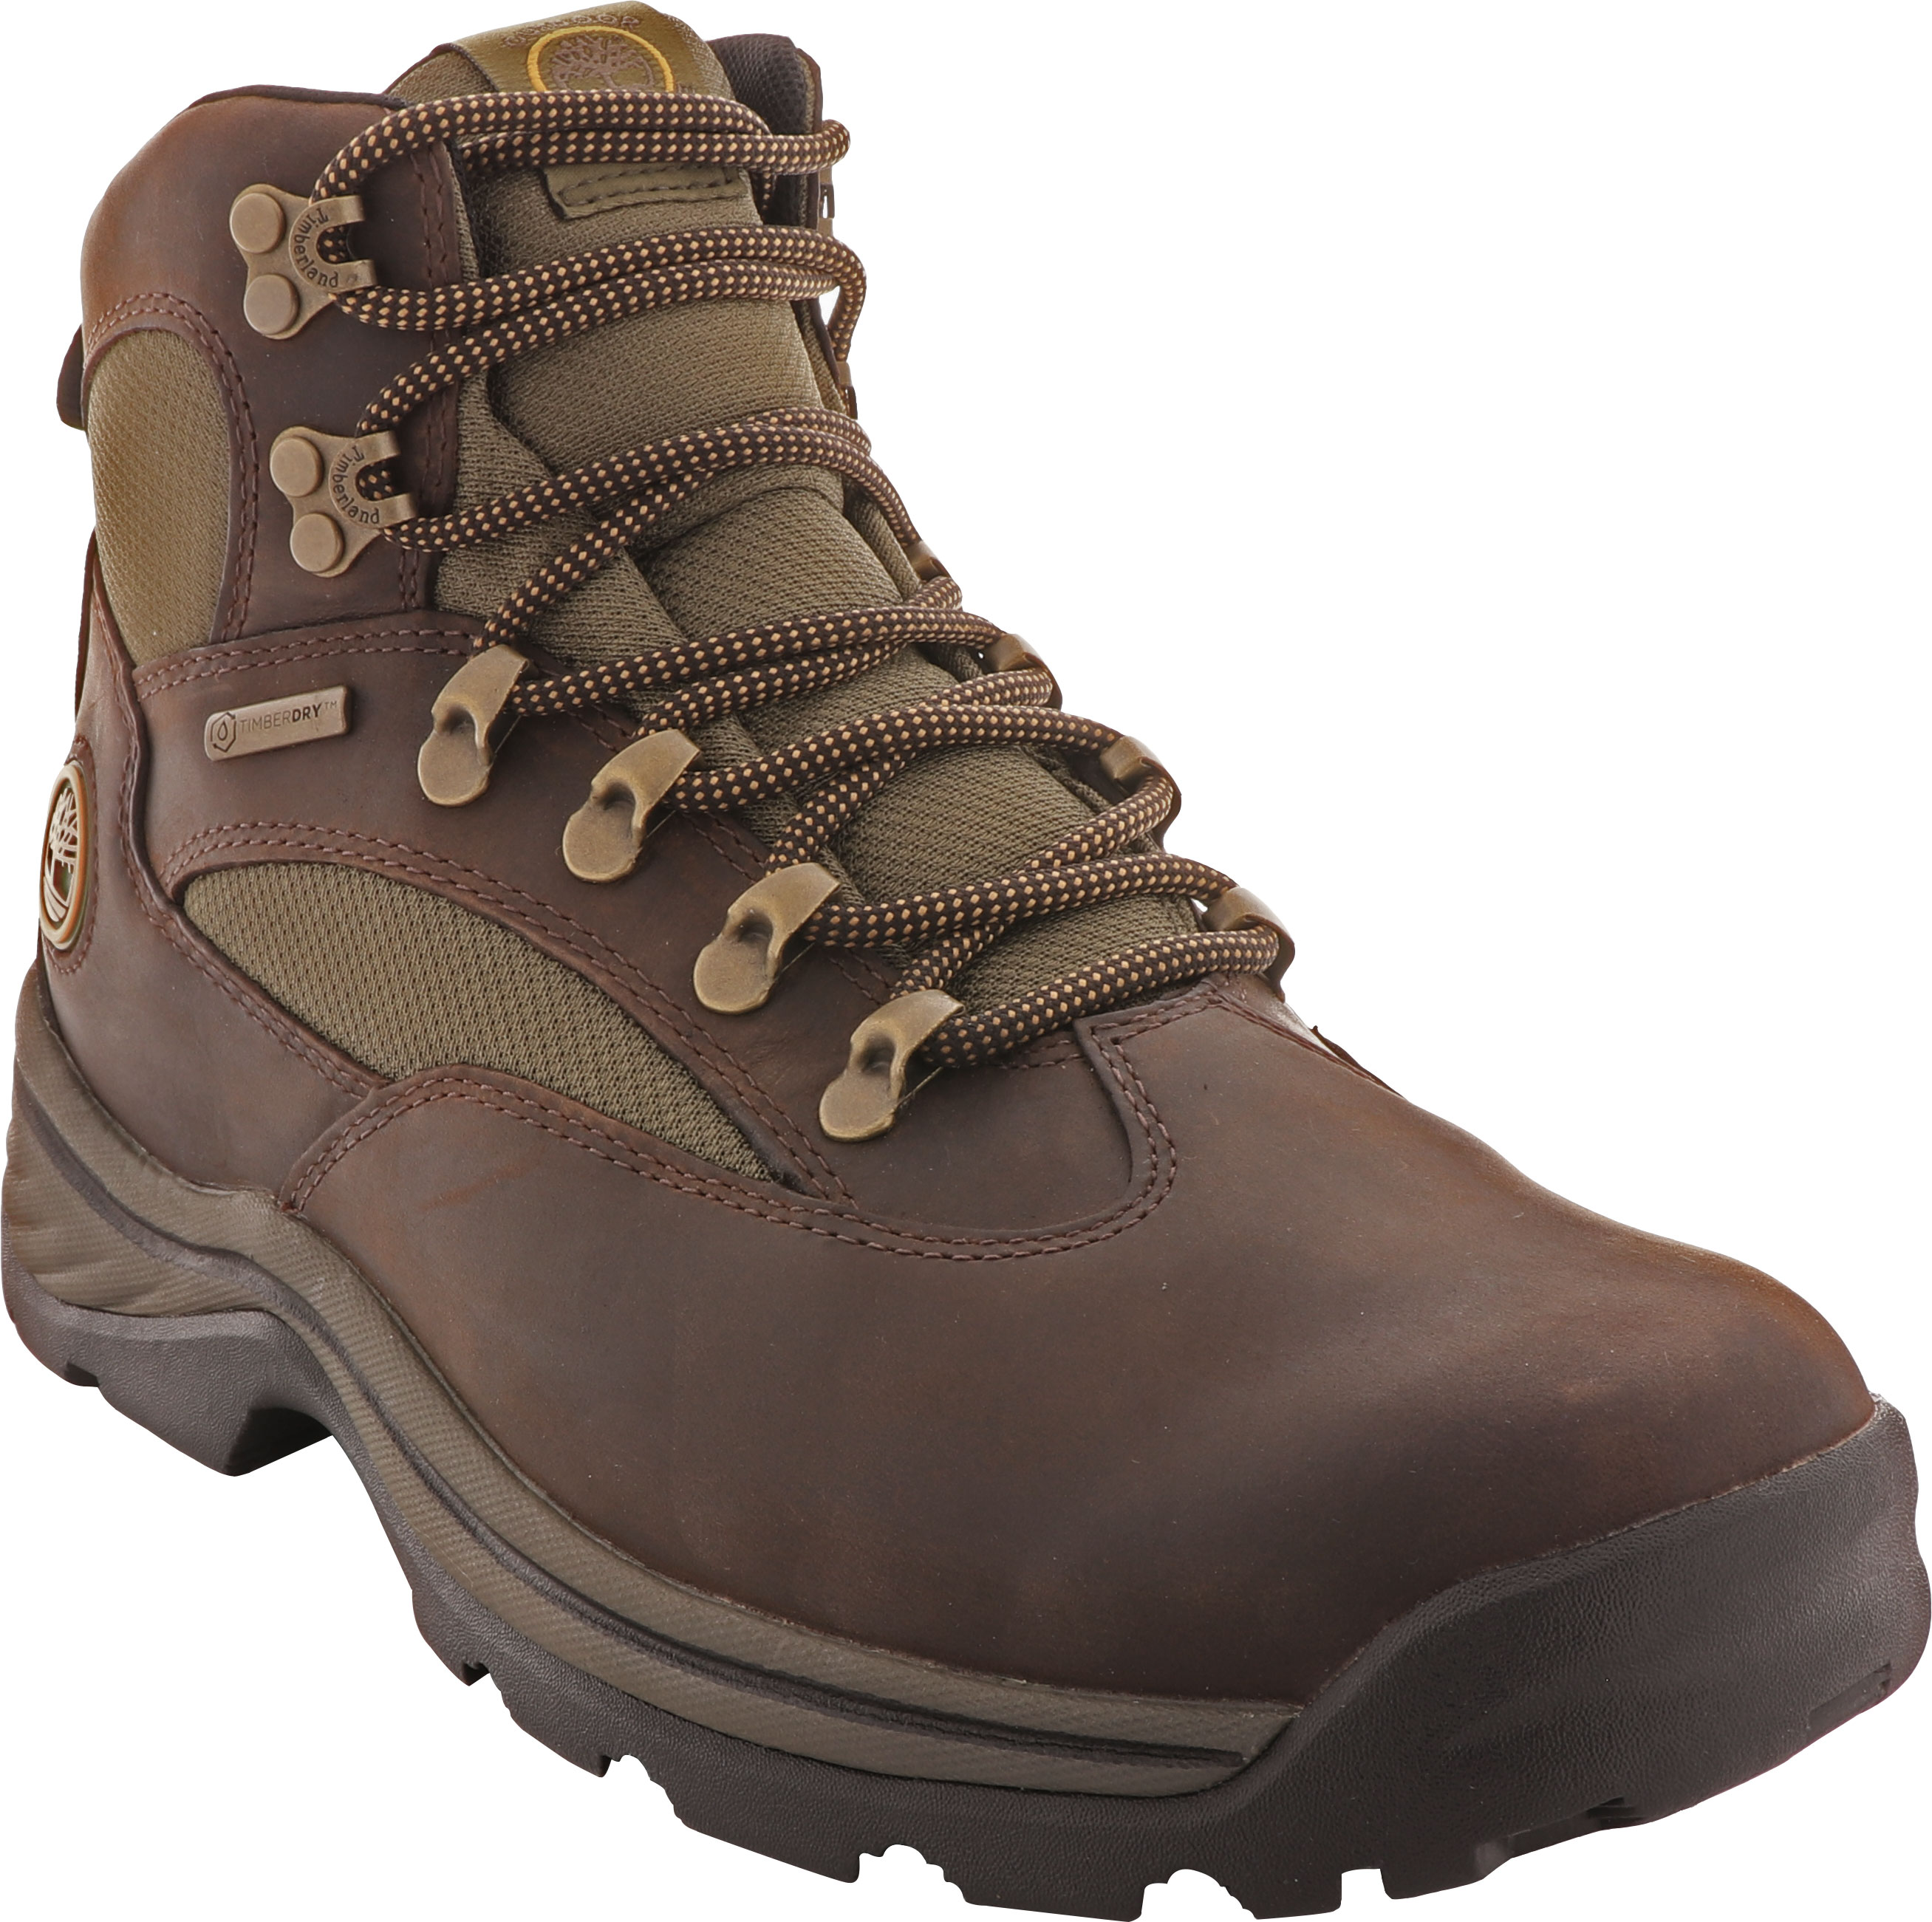 b2c9641090b Timberland Men s TB015130210 - Chocorua Trail Mid - The Shoe Mart